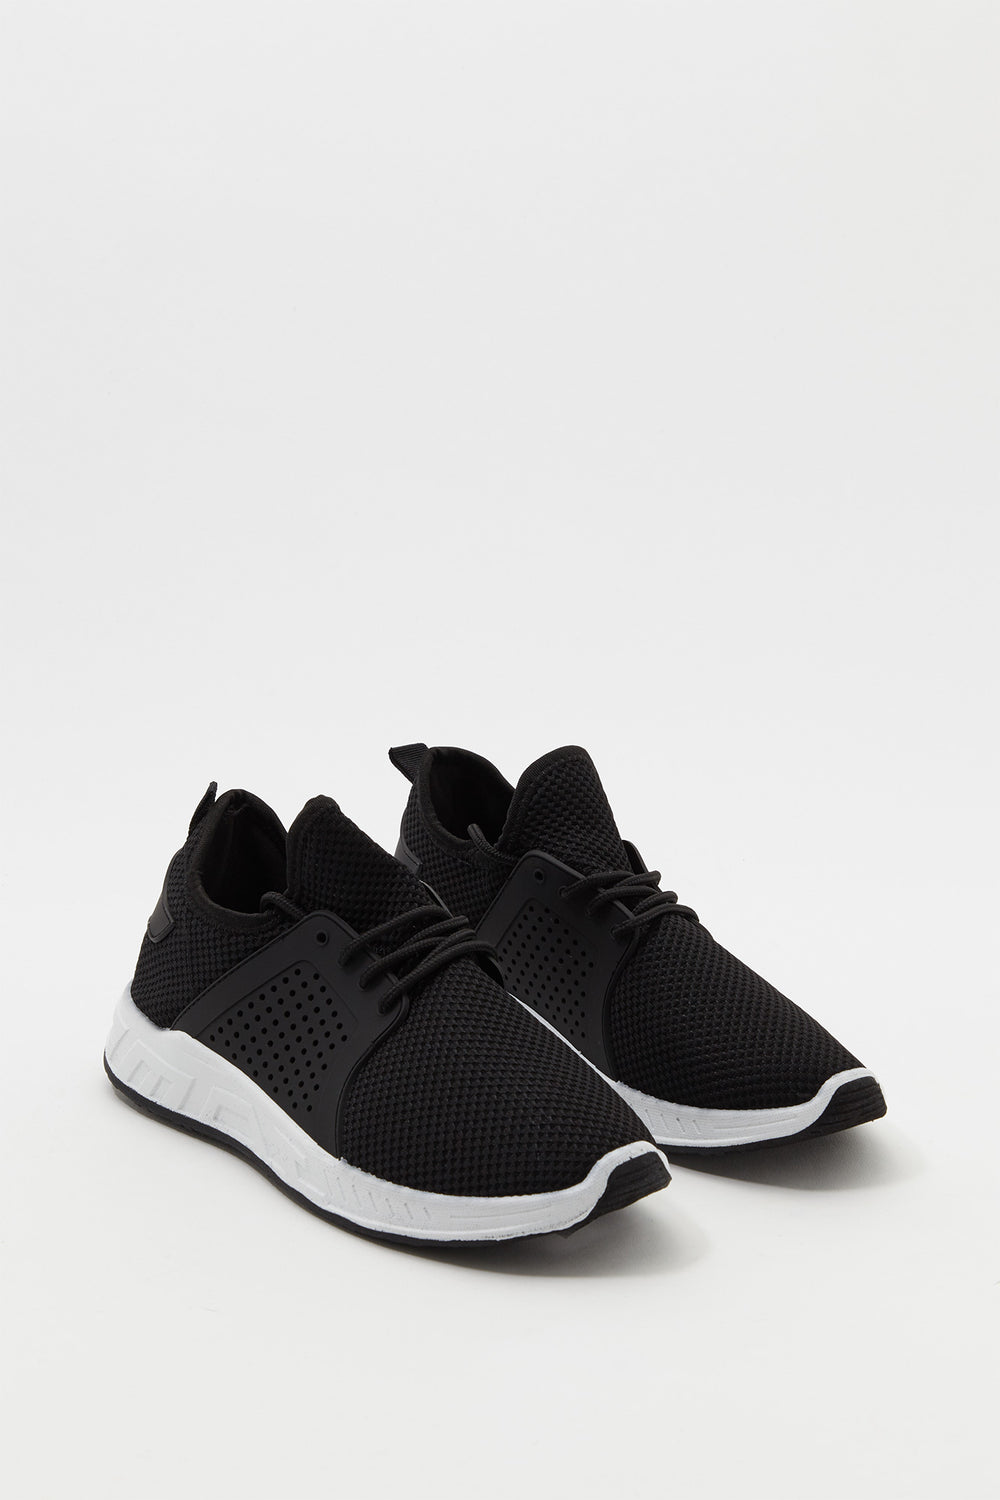 Mesh Perforated Sneaker Black